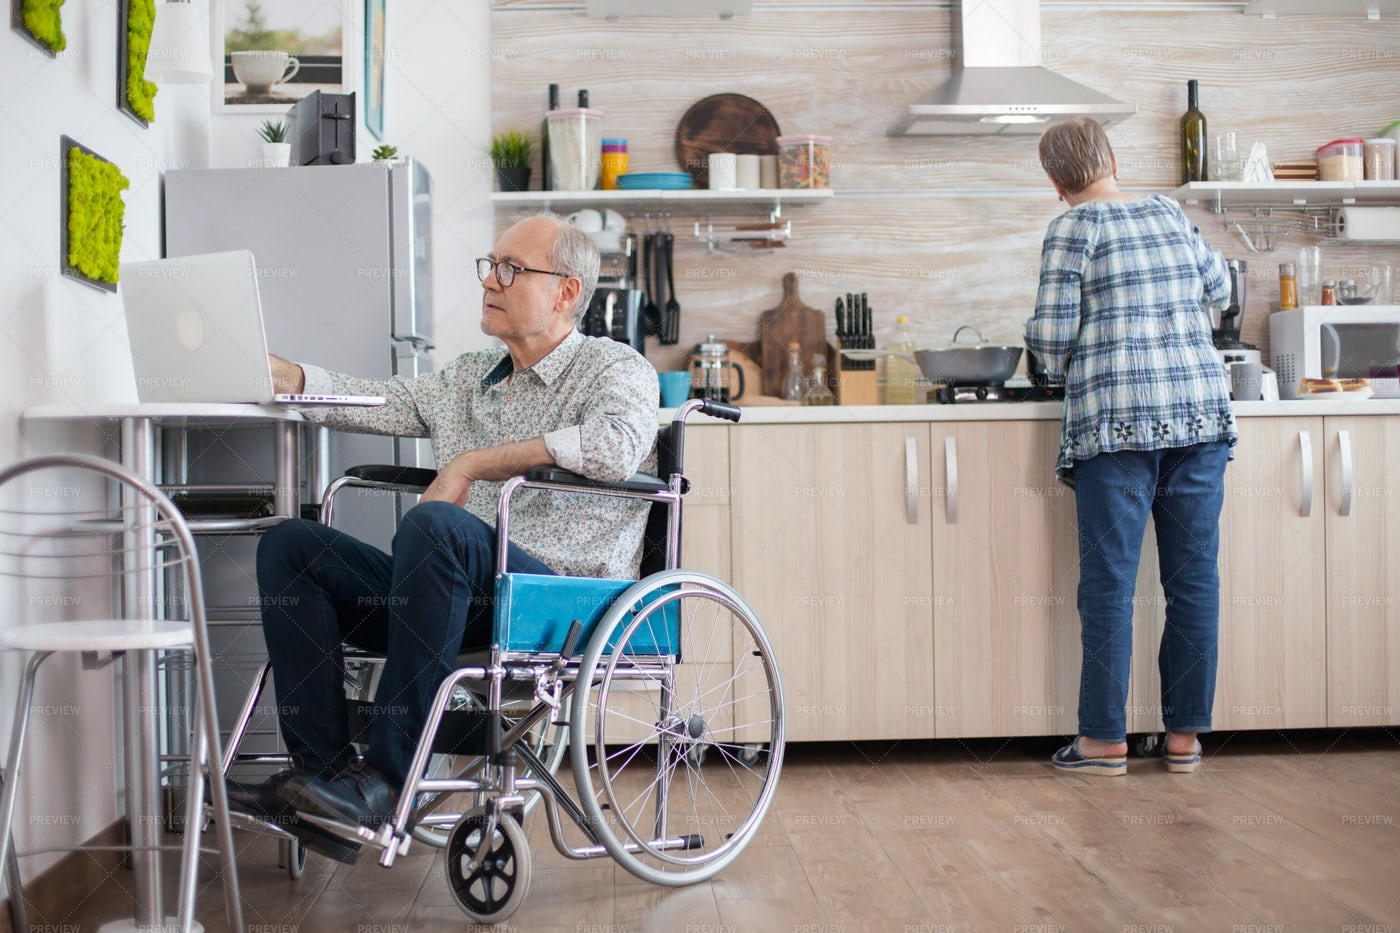 Businessman With Laptop In Wheelchair: Stock Photos